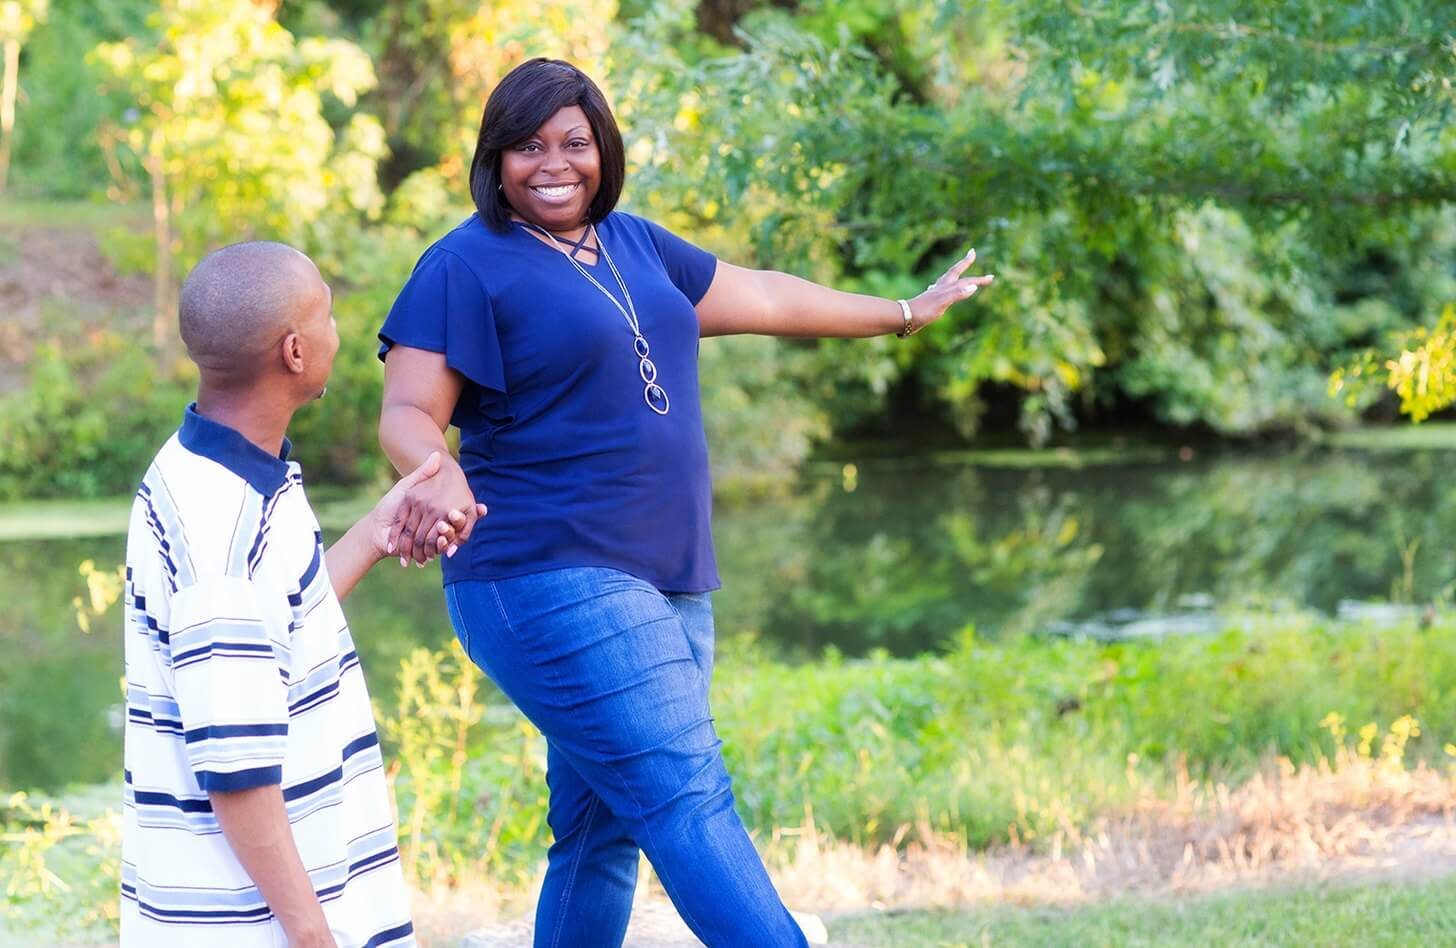 Kidney and pancreas recipient, Nikki Love-McIntyre, walks in Forest Park with her husband.